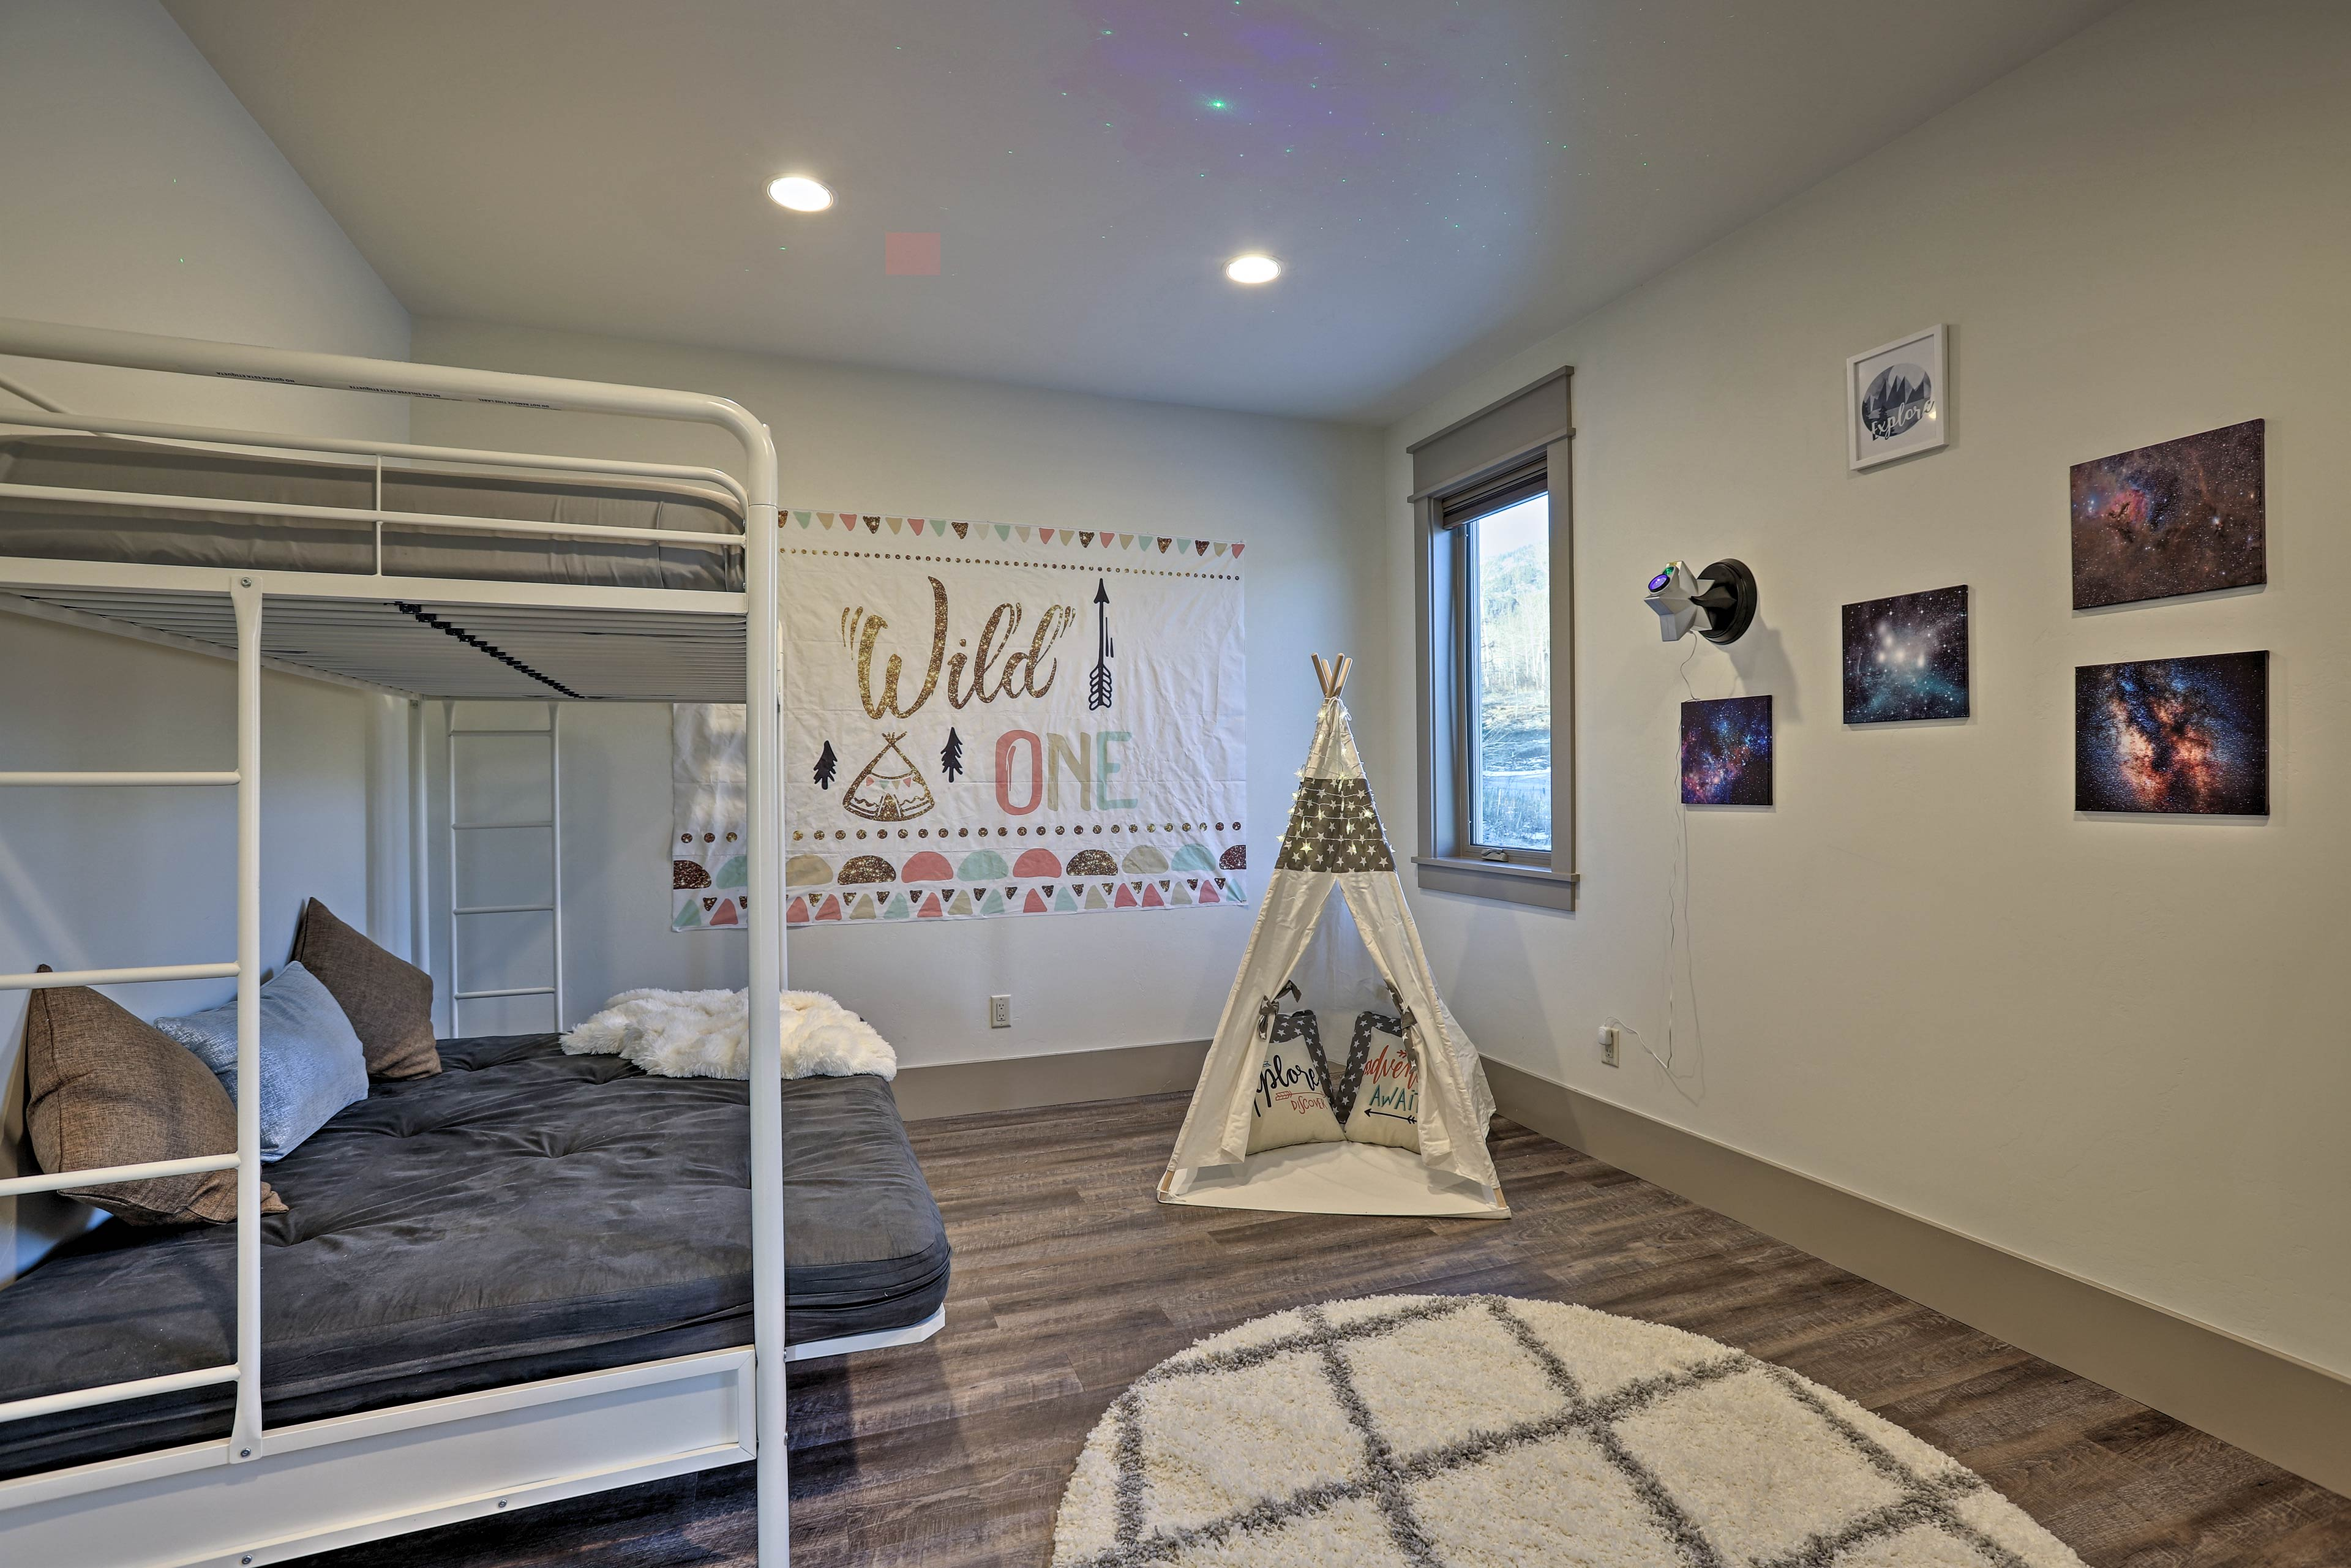 Tuck your kids into this endearing room & they'll fall sleep to the star lights.